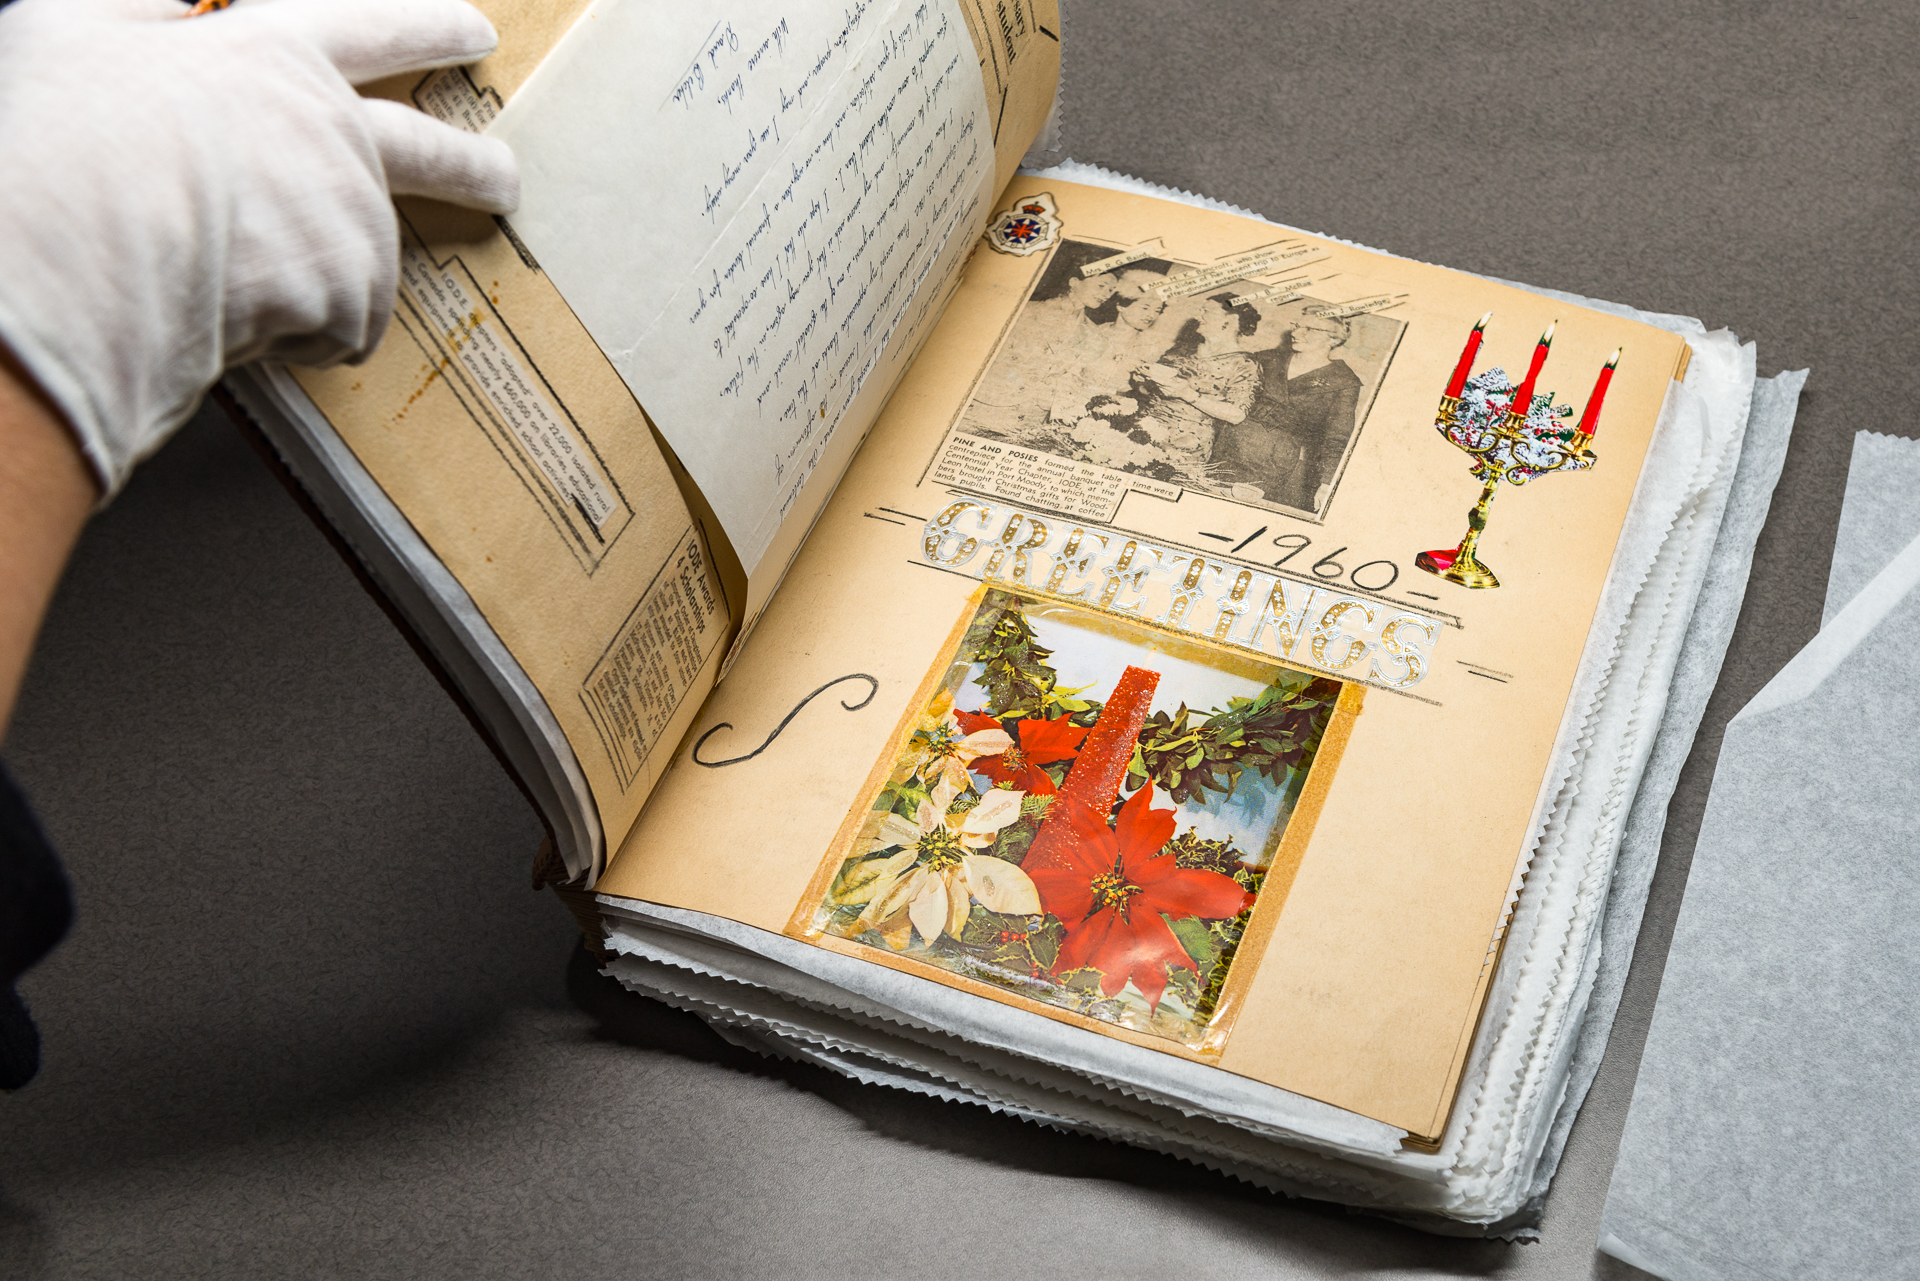 Imperial Order of the Daughters of the Empire Centennial Scrapbook, Circa 1971 (JPG) Opens in new window